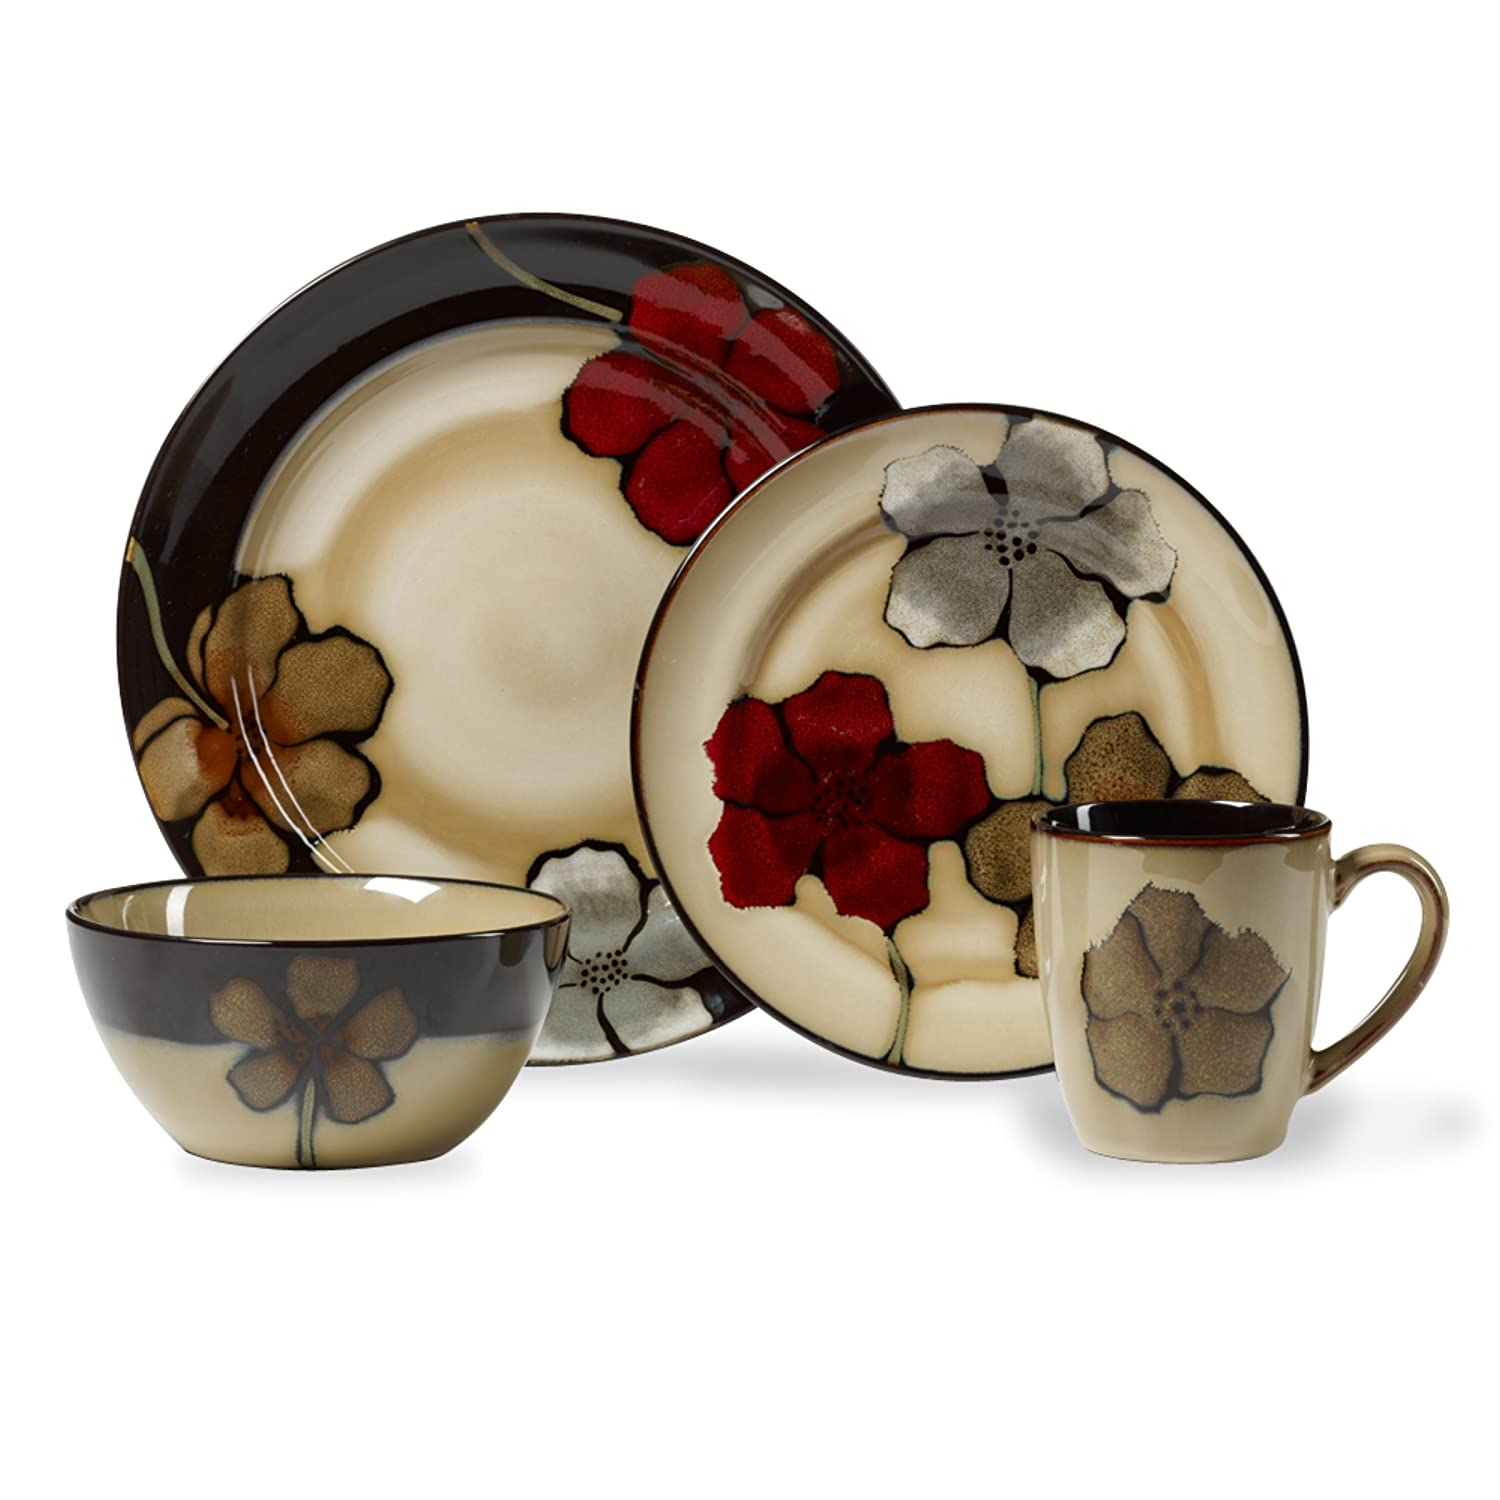 Amazon.com Pfaltzgraff Painted Poppies 16-Piece Stoneware Dinnerware Set Service for 4 Kitchen \u0026 Dining  sc 1 st  Amazon.com : 16 piece stoneware dinnerware set - pezcame.com